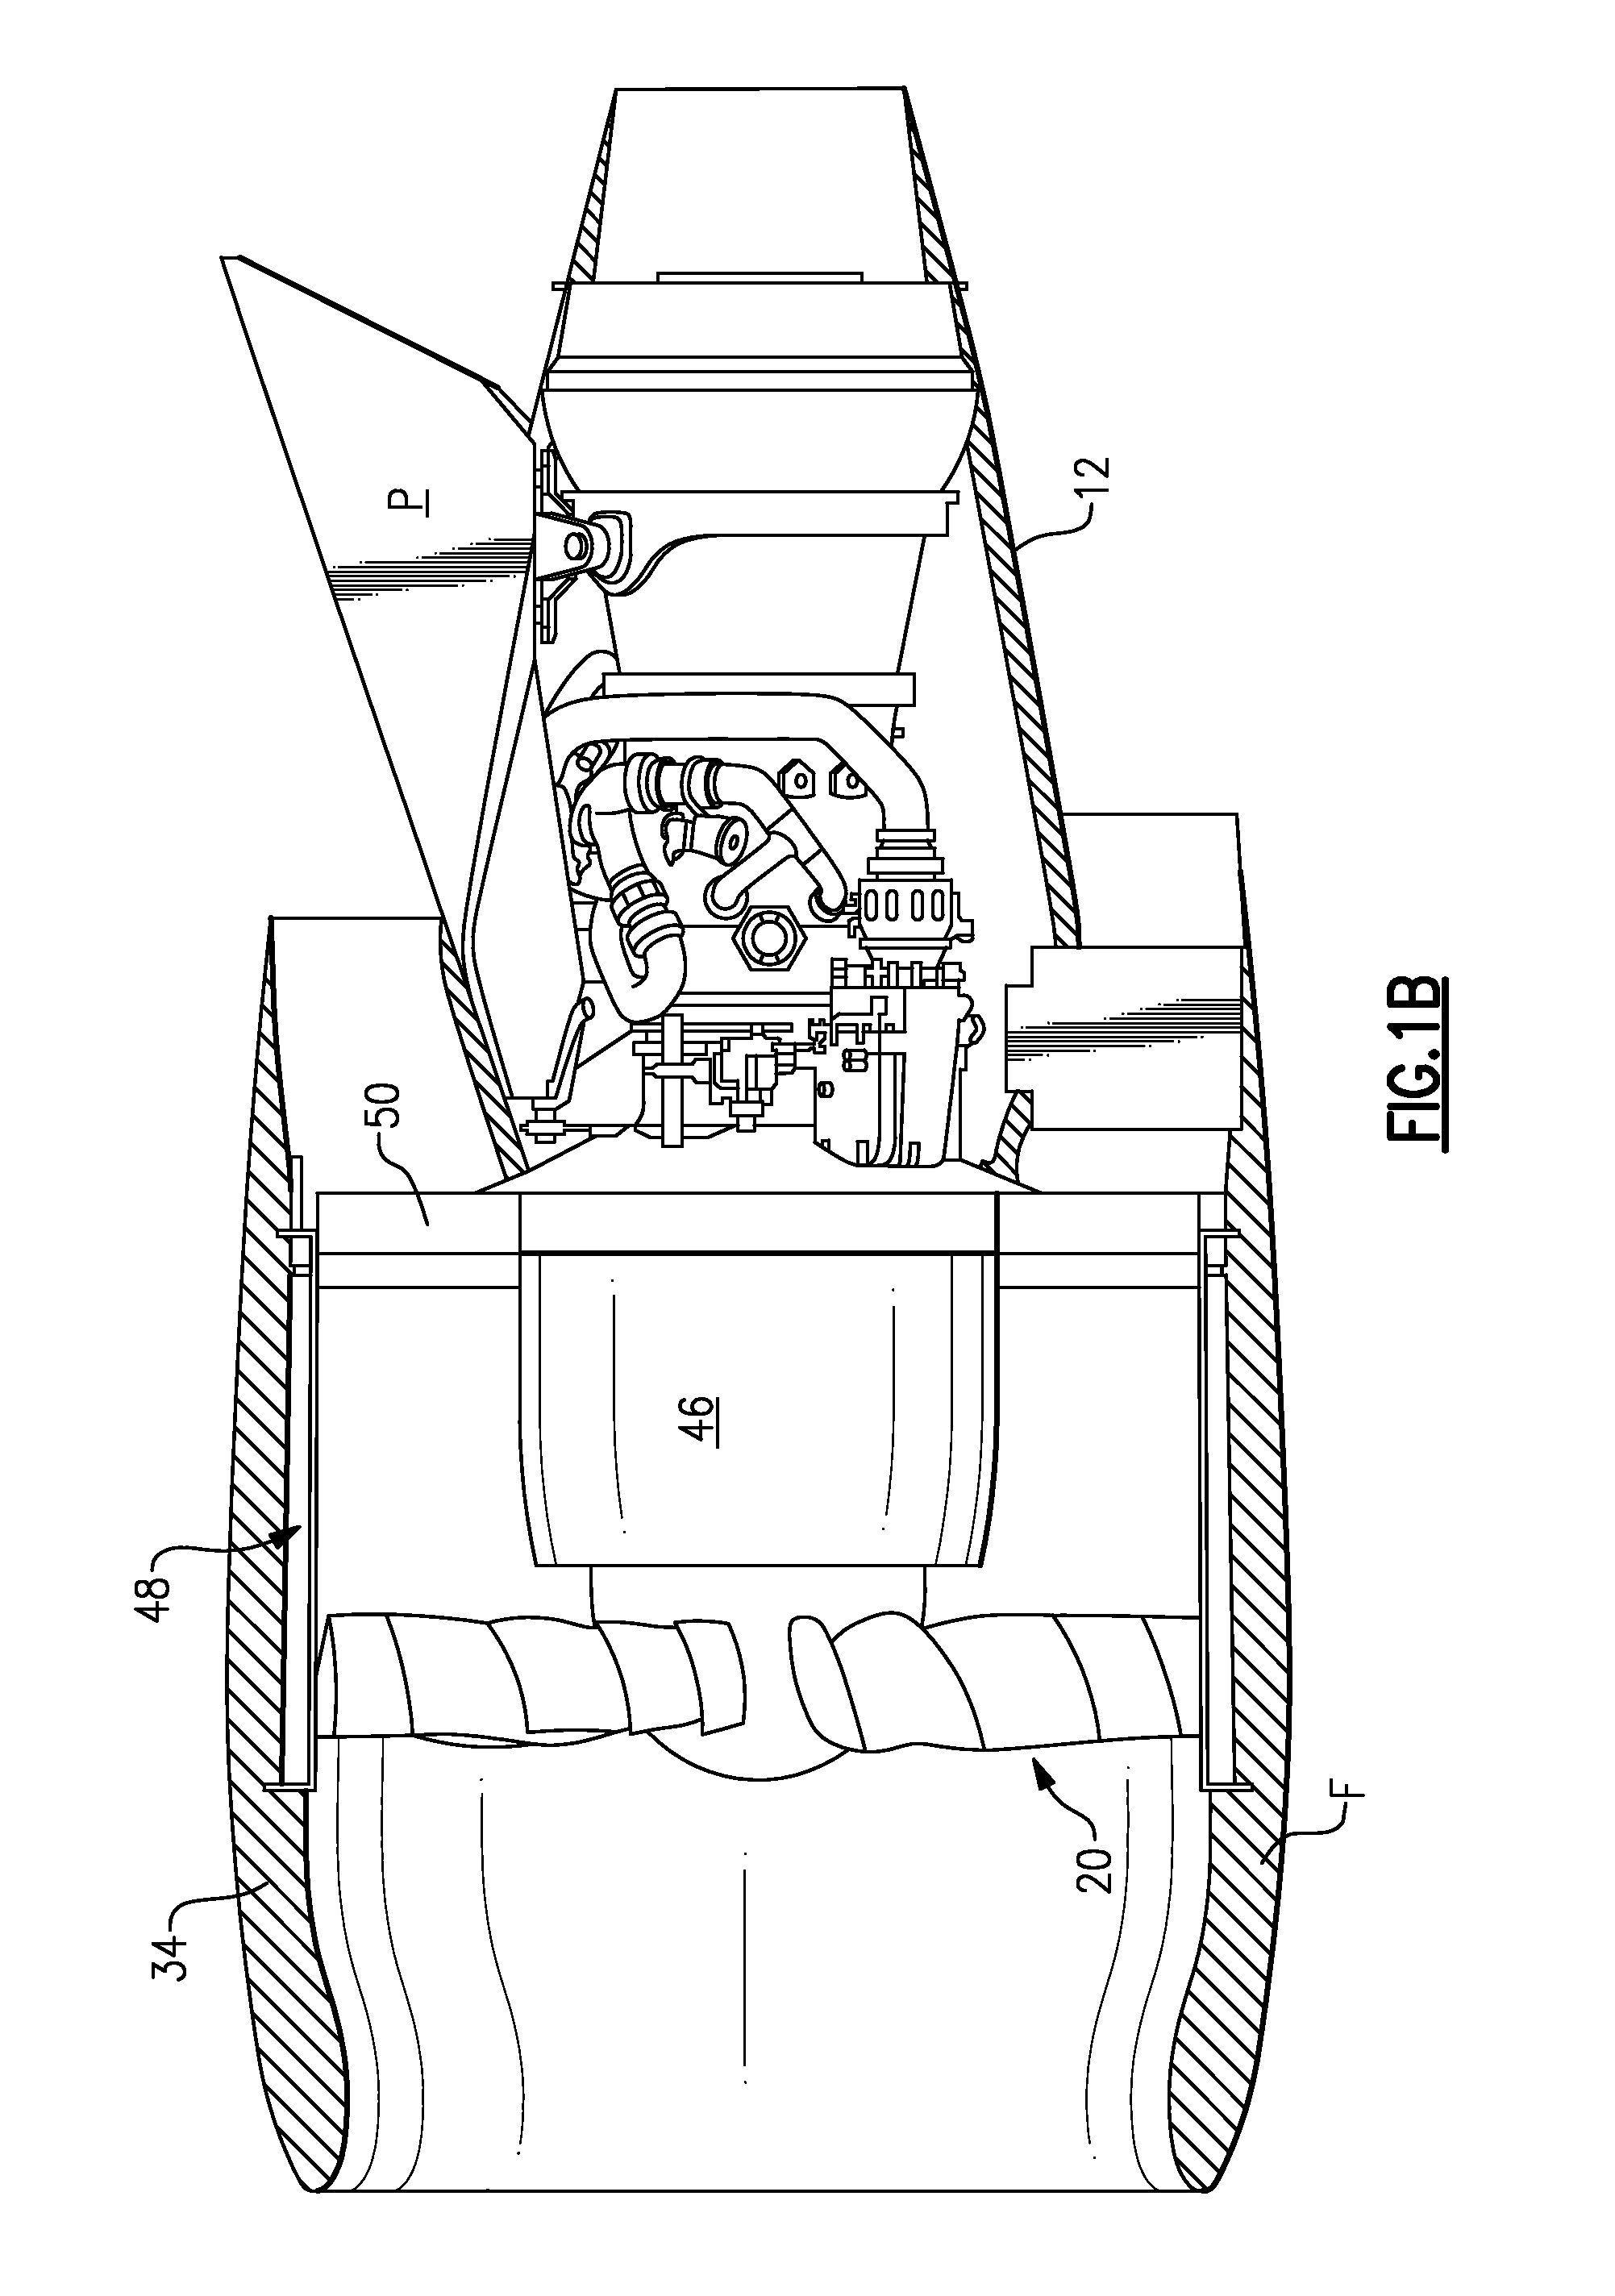 Patent US Gas turbine engine with geared architecture